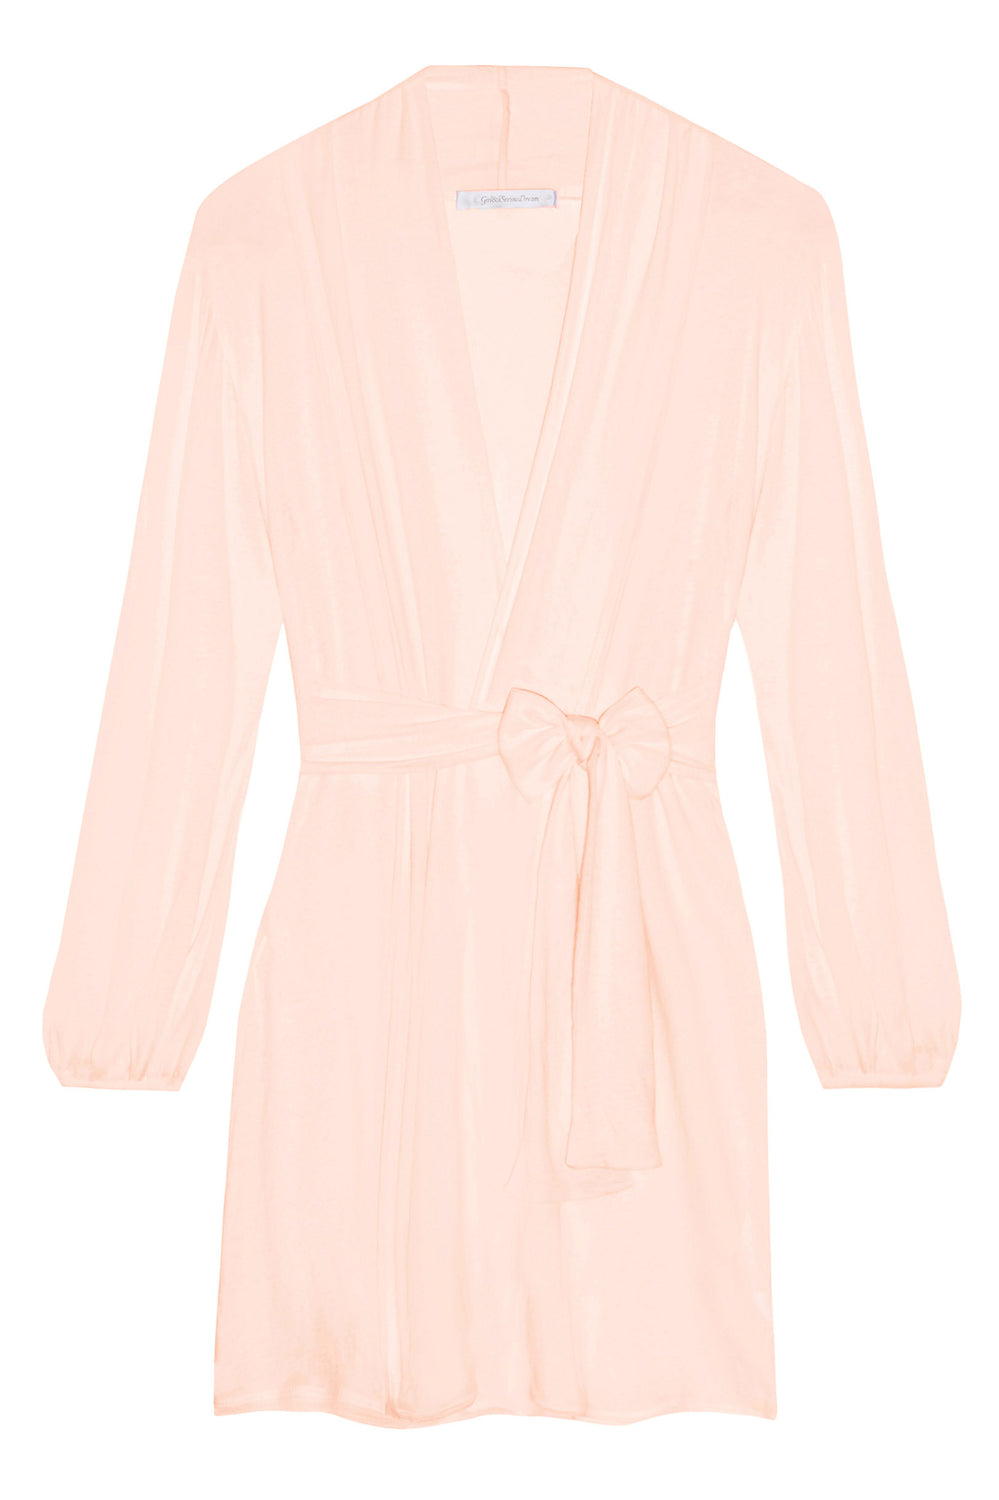 Lounge Pima Cotton Robe in blush pink - Style RP2016